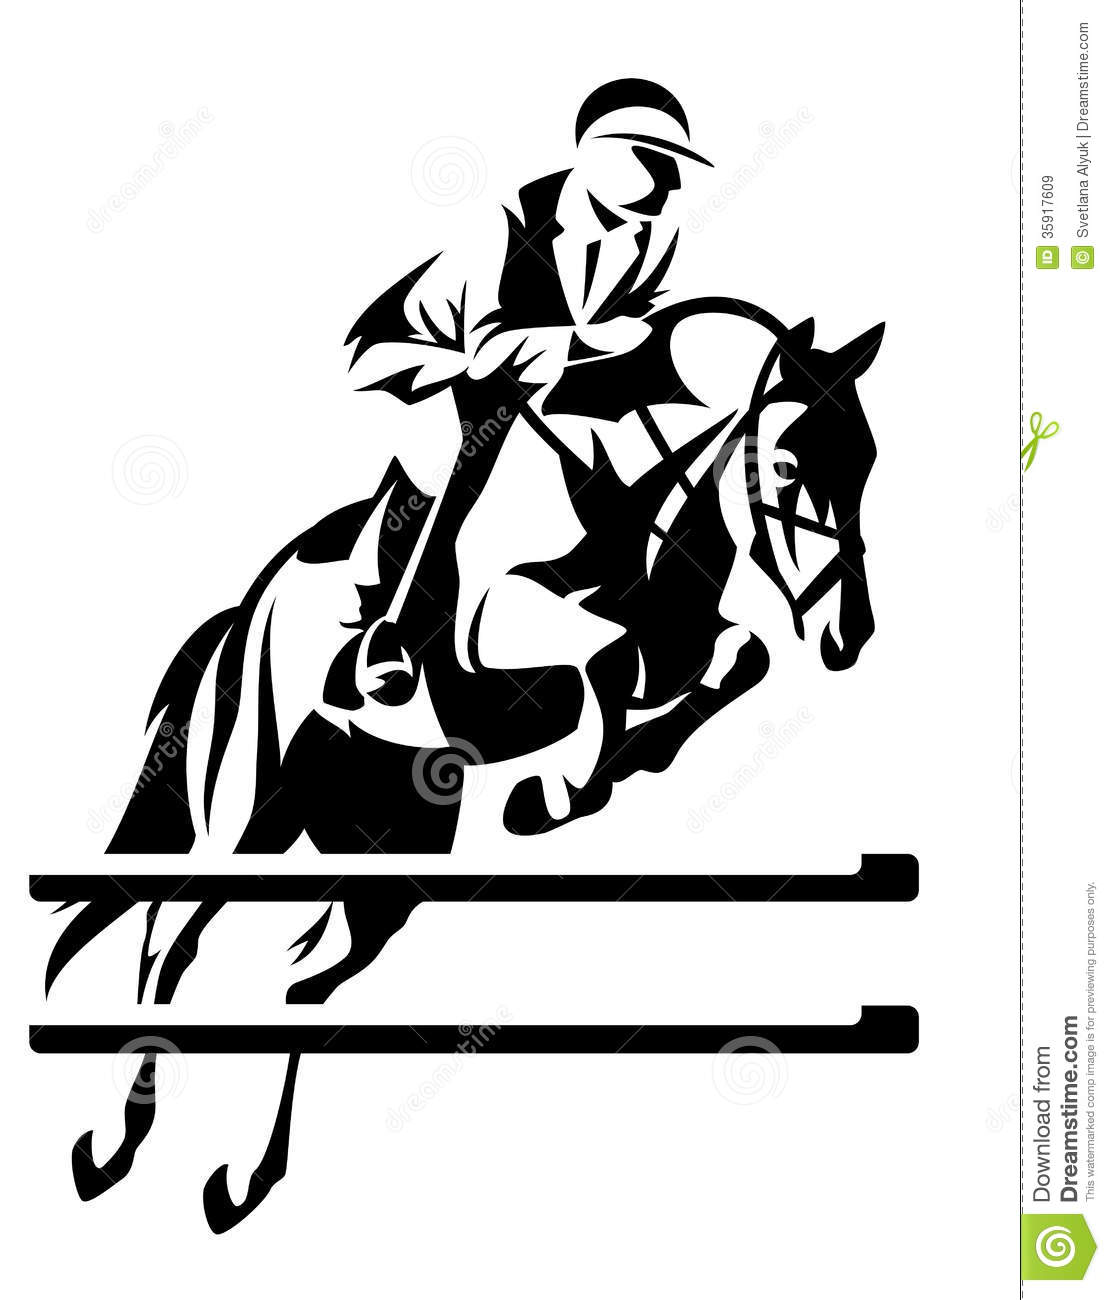 Show jumping horseman design - black and white equestrian sport emblem ...